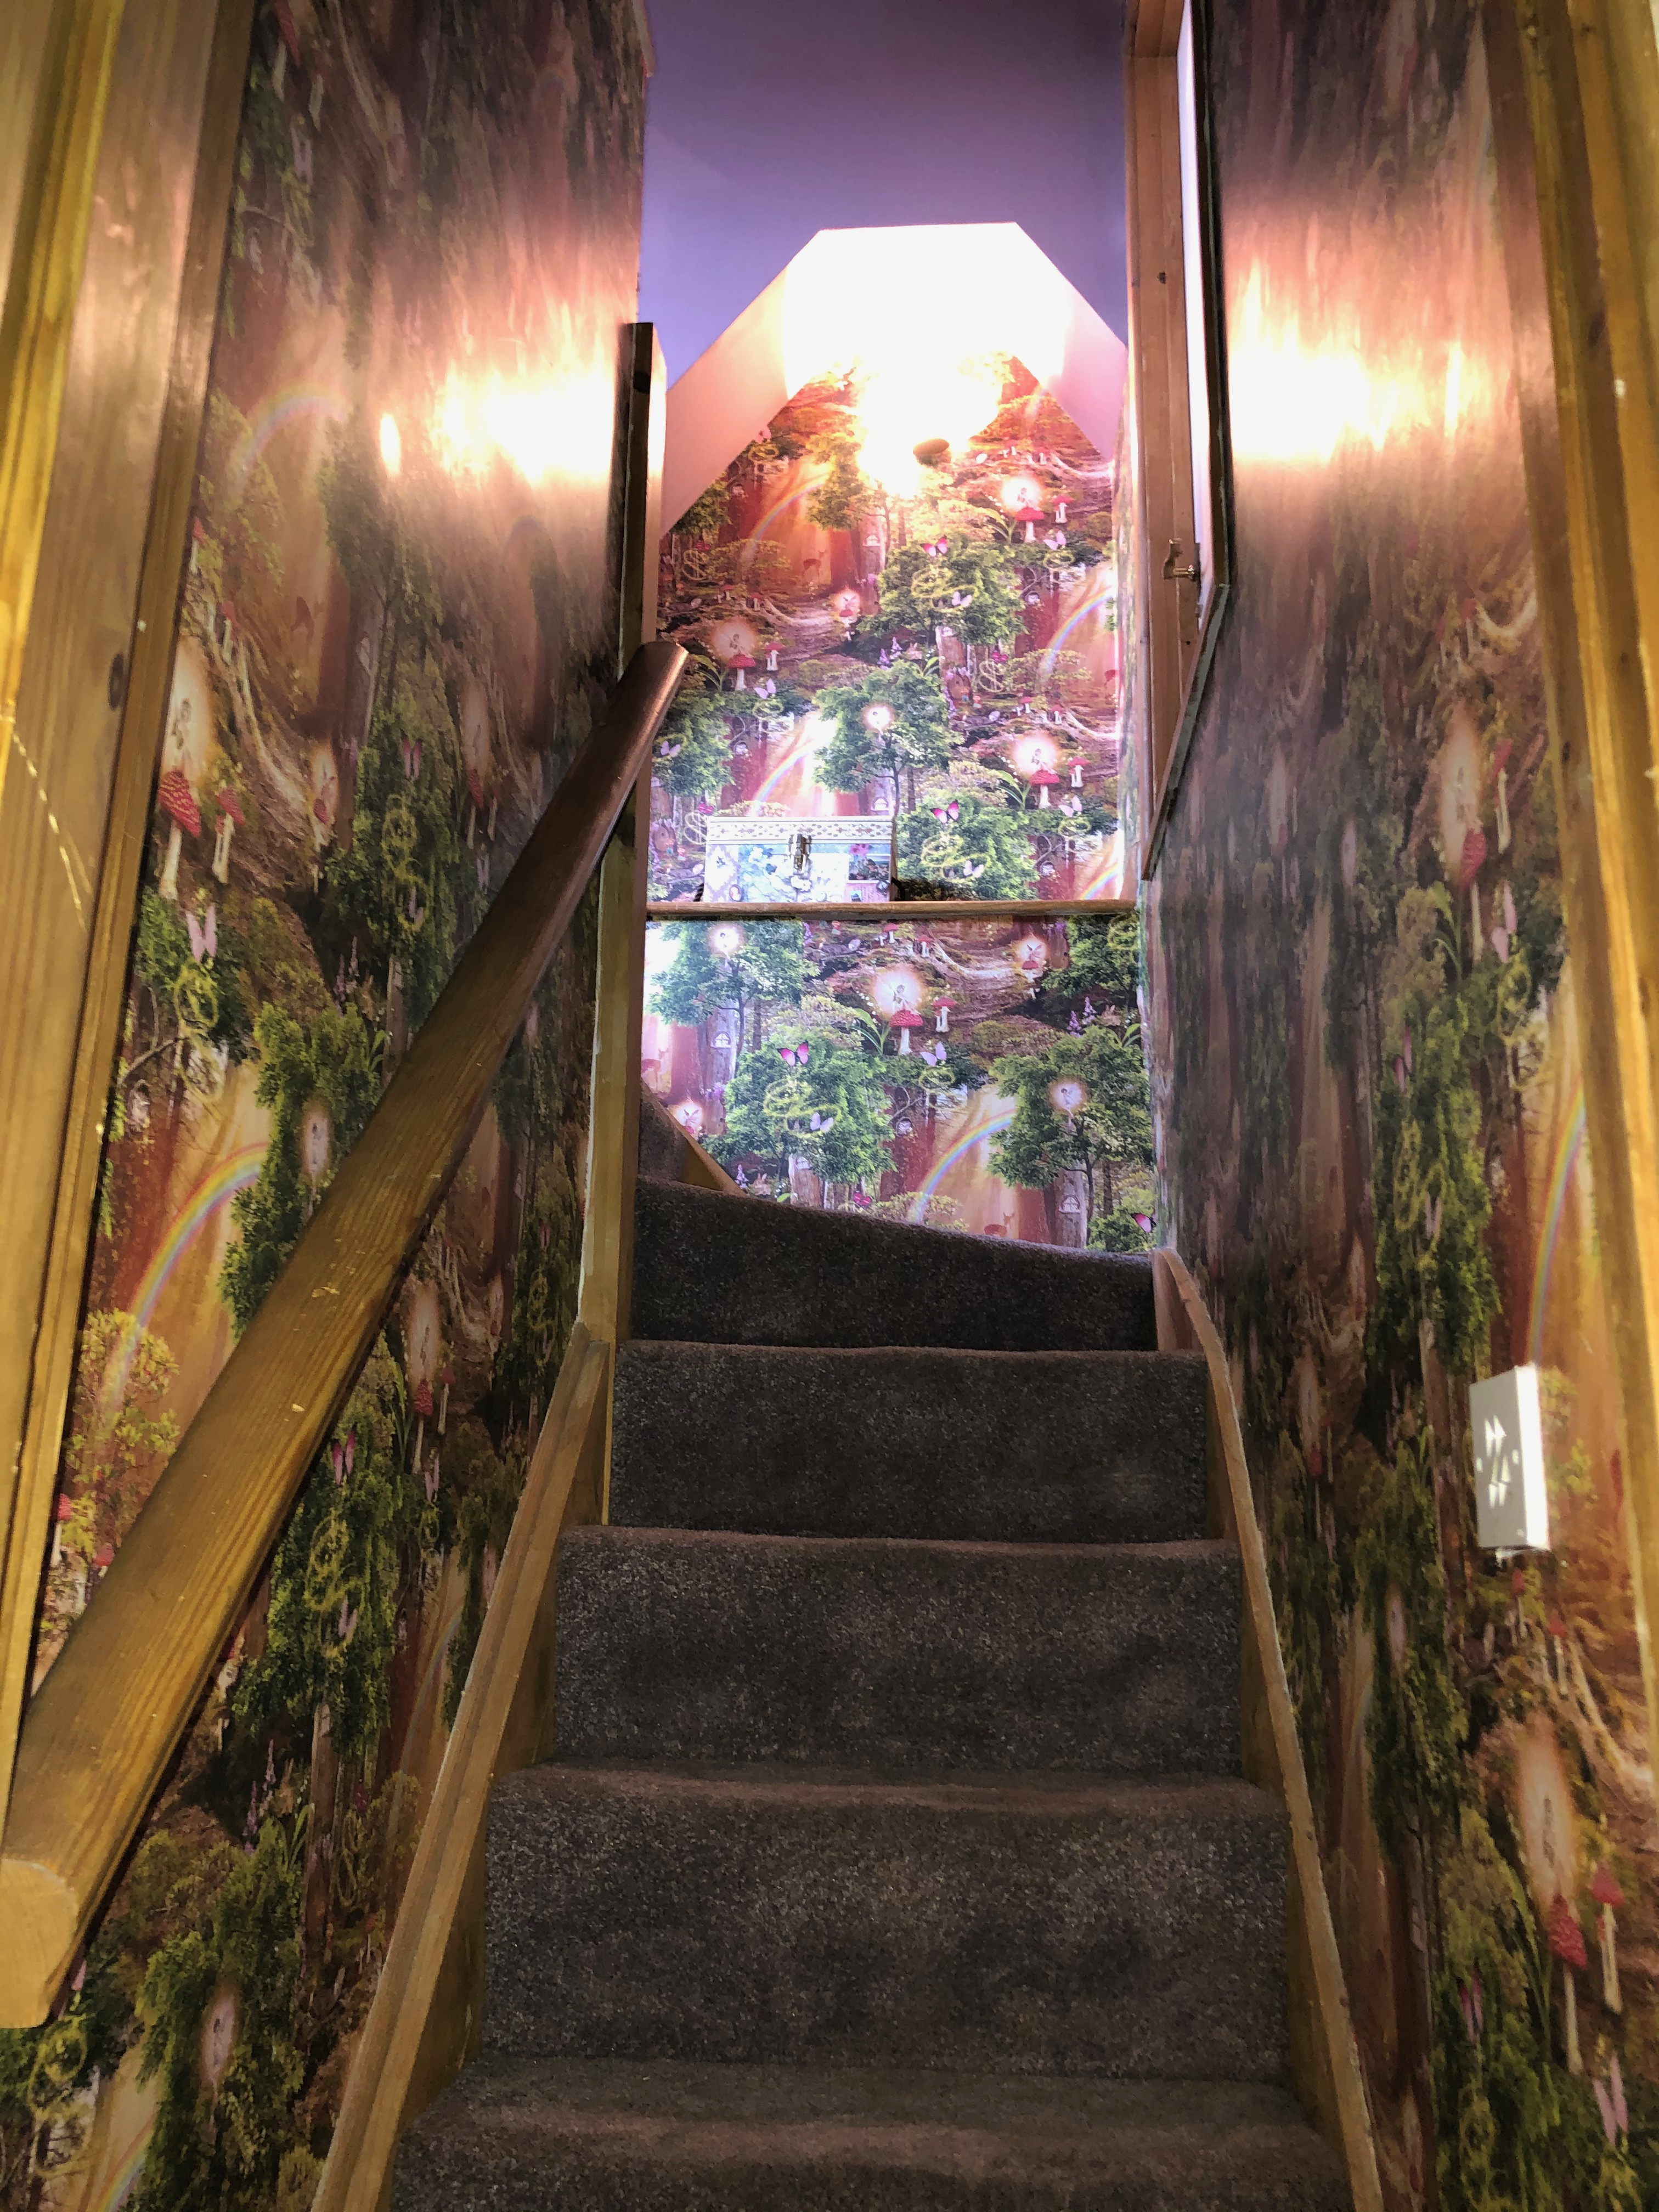 Stair well to Bedroom 4 - pixies